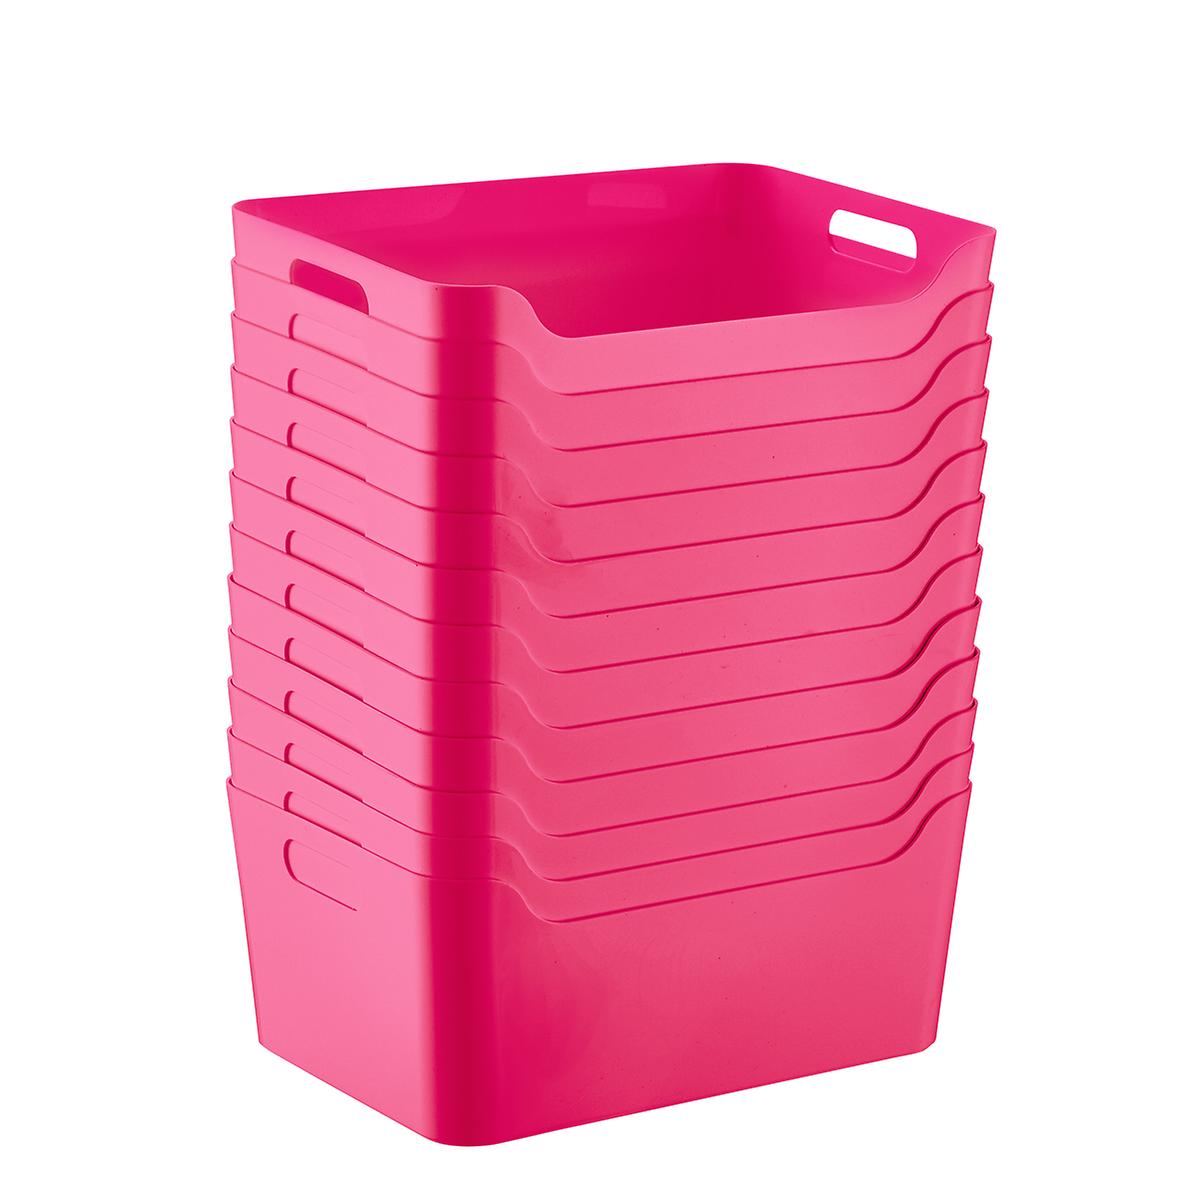 Case of 12 Fuchsia Plastic Storage Bins with Handles